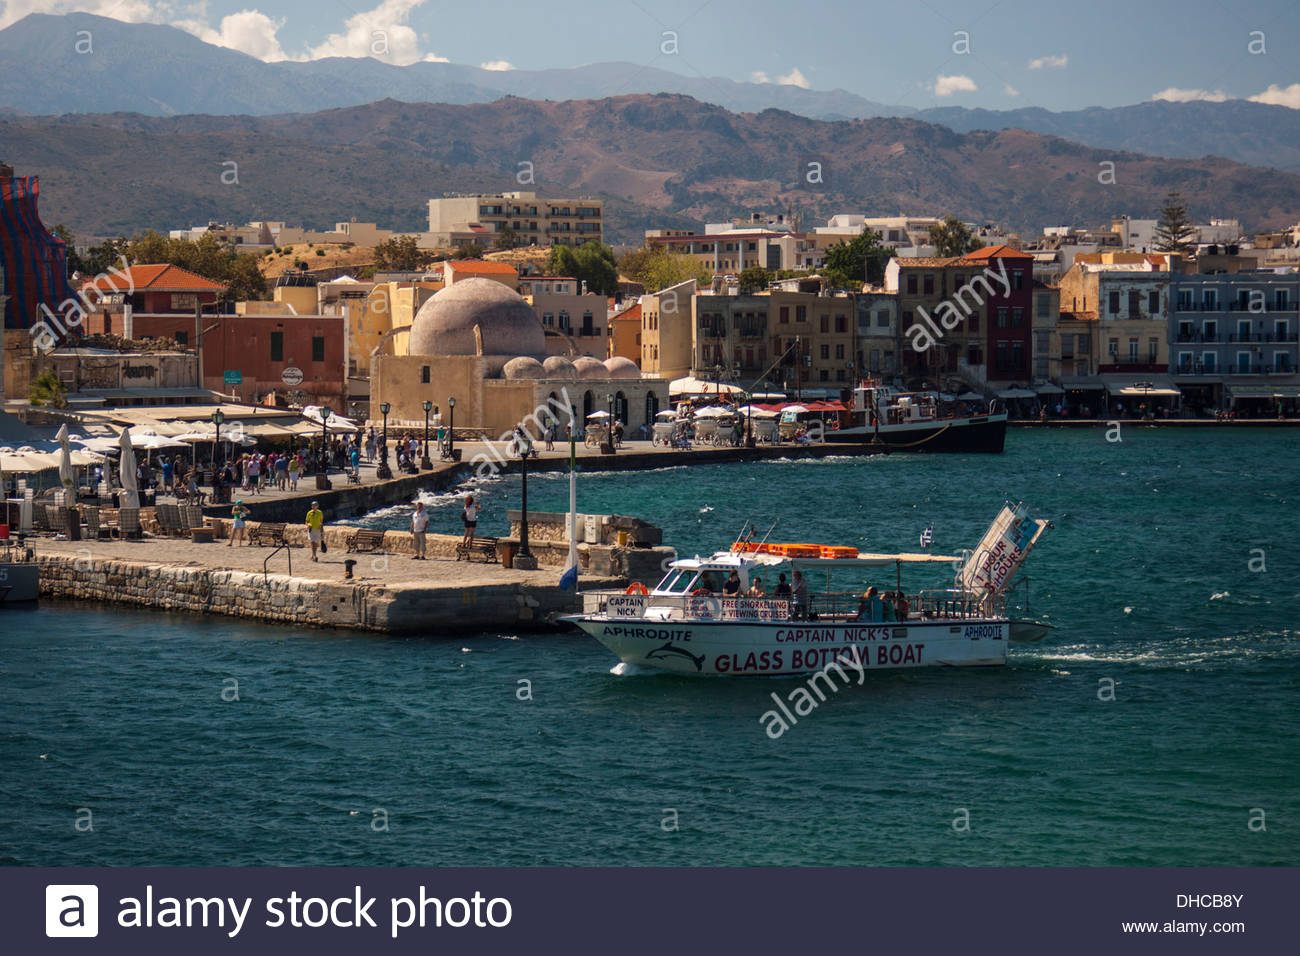 Glass bottom boat entering Chania horbour on Crete - Stock Image